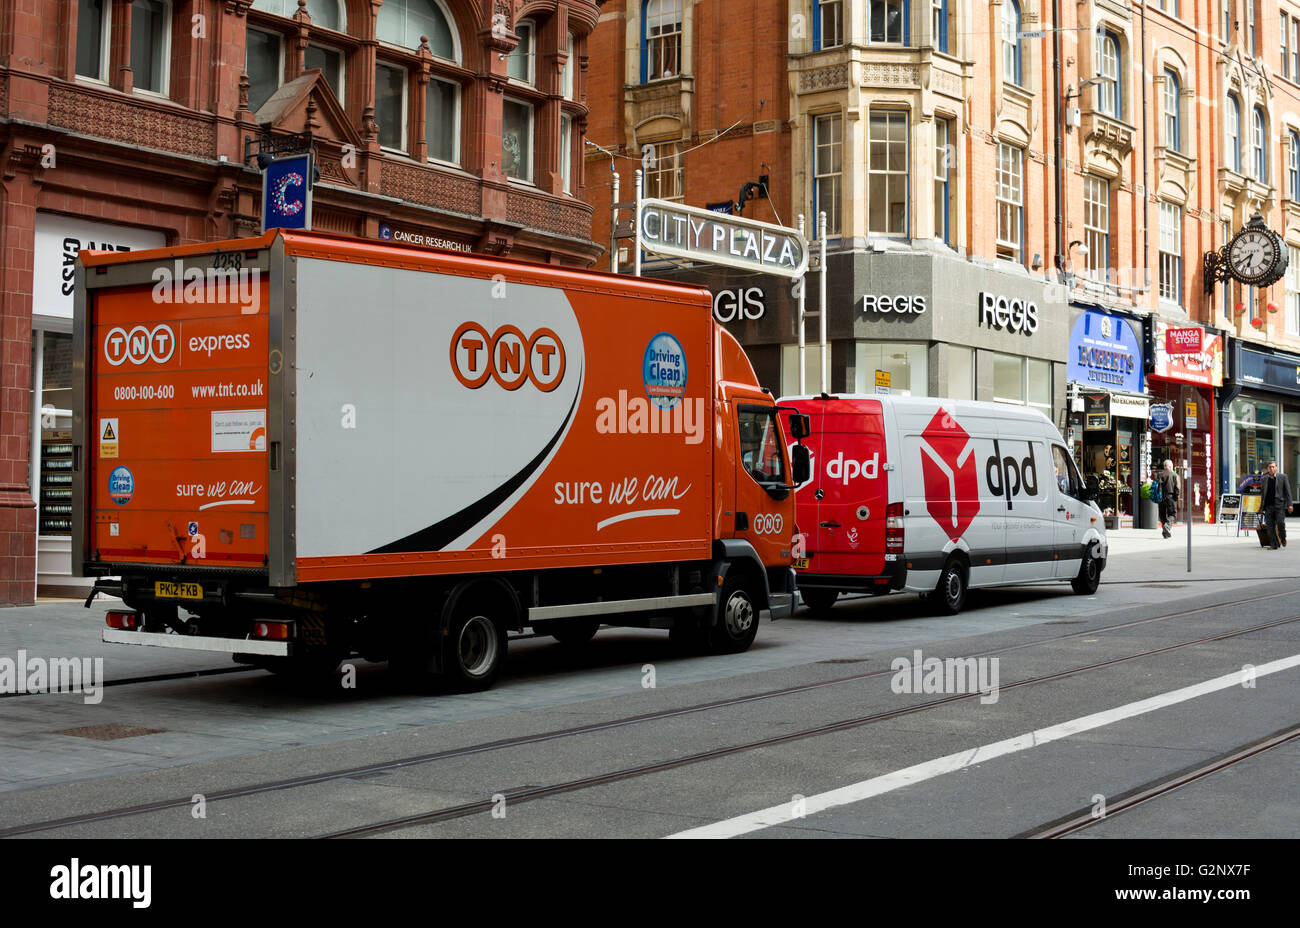 tnt and dpd parcel delivery vehicles birmingham city centre uk stock photo royalty free image. Black Bedroom Furniture Sets. Home Design Ideas